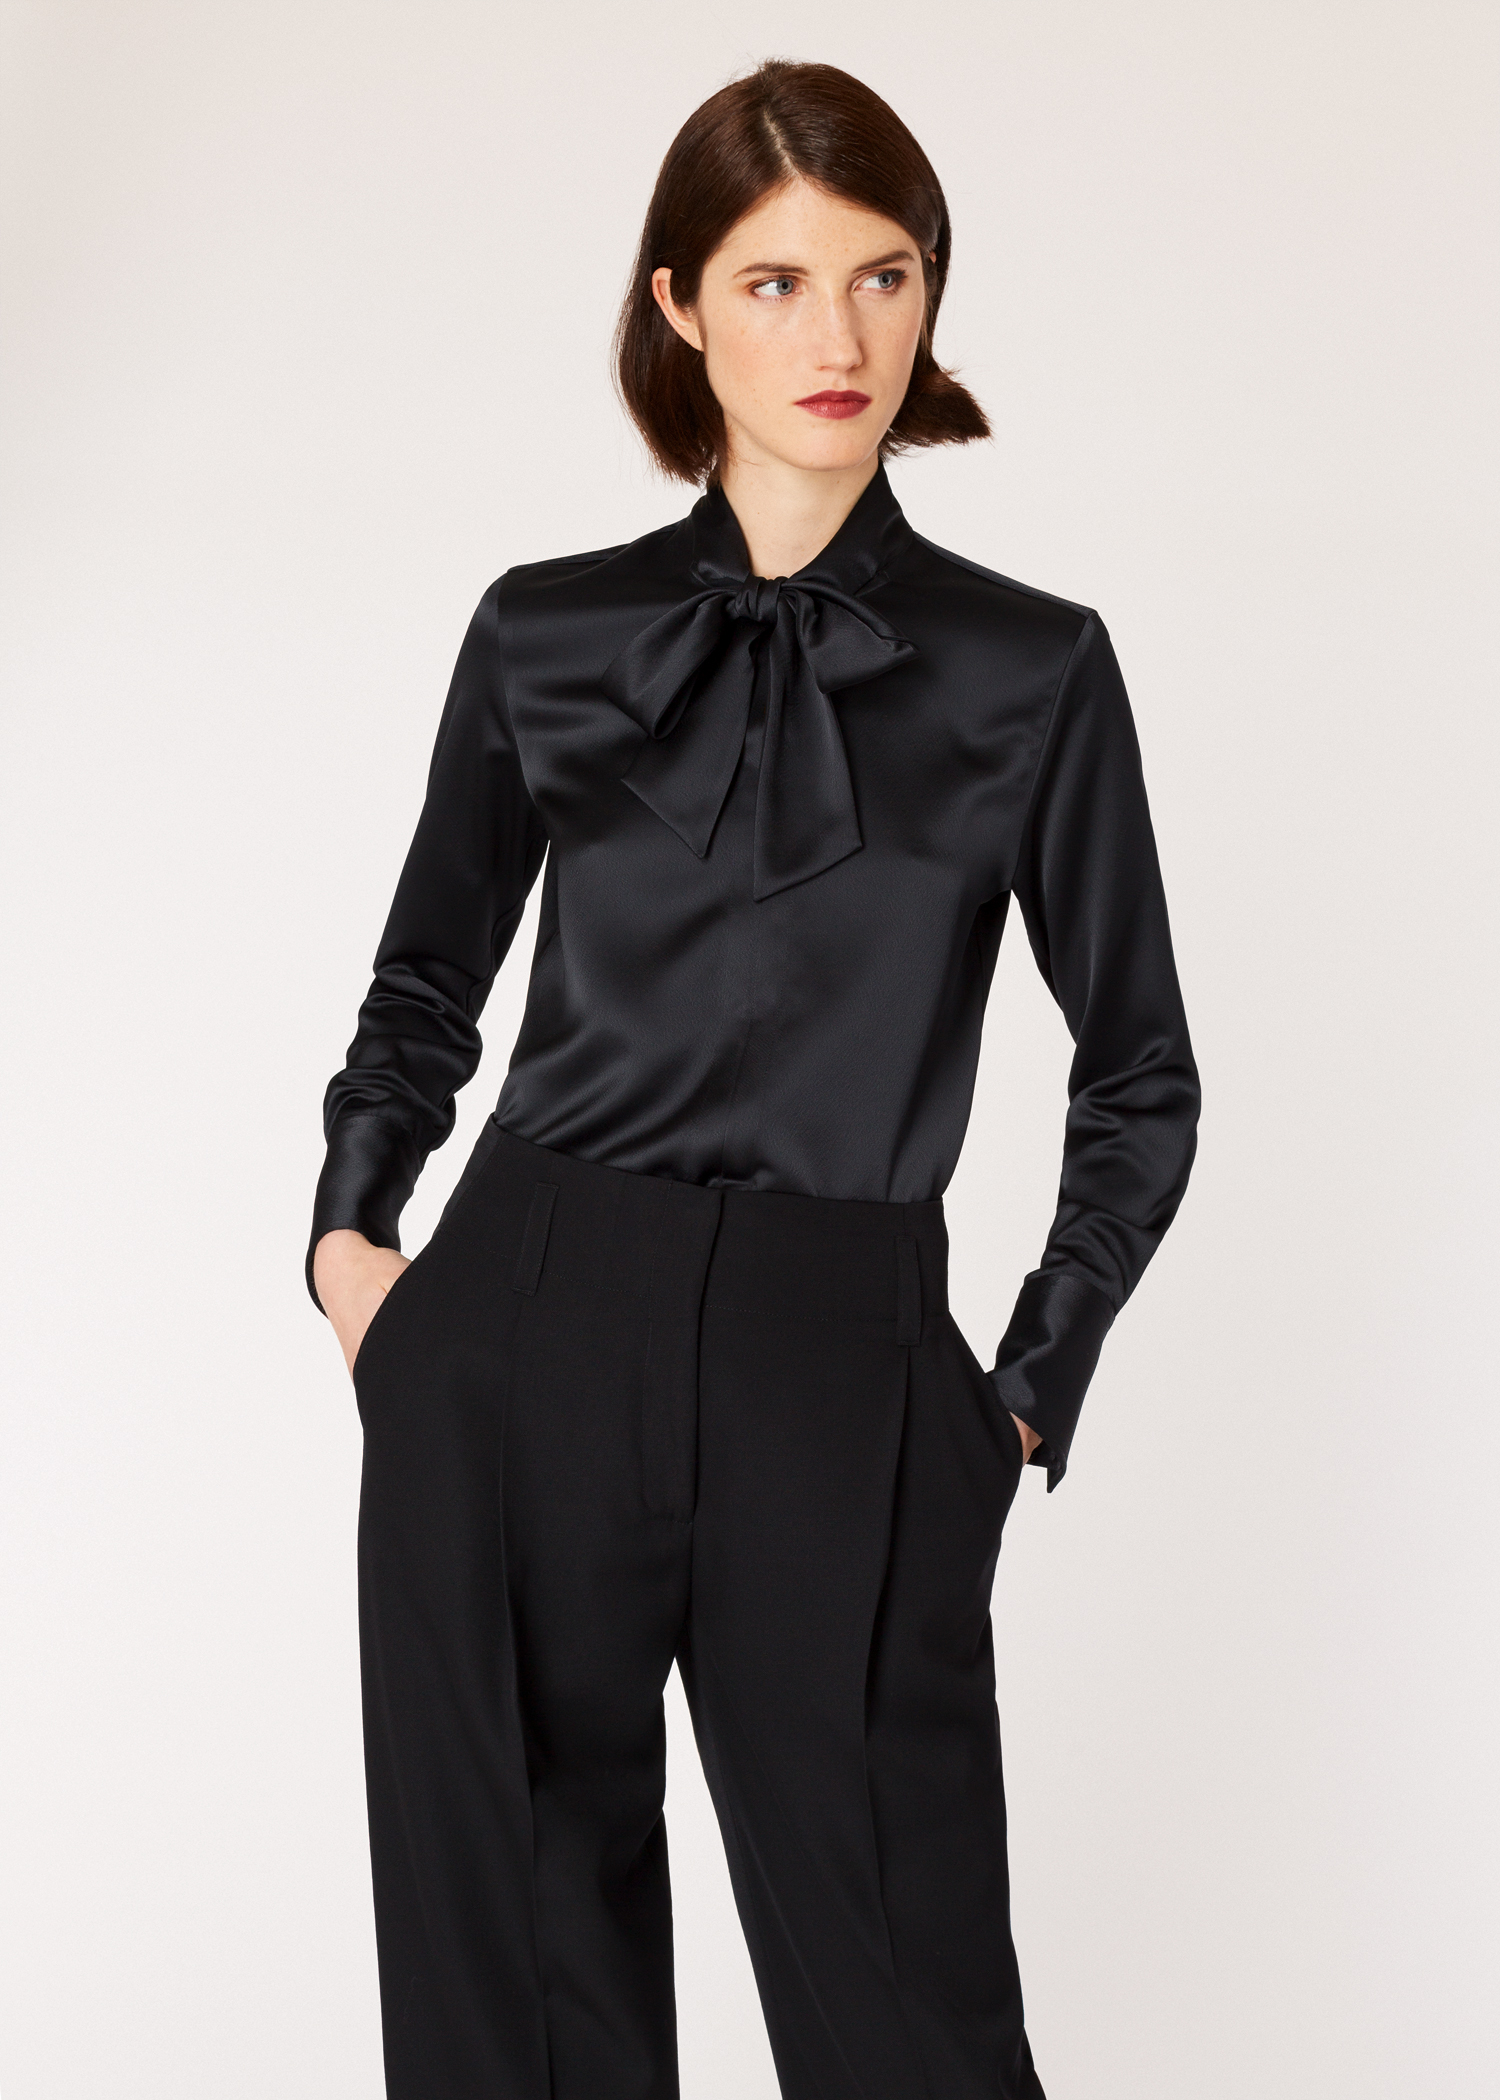 Womens Black Satin Tuxedo Shirt Paul Smith US